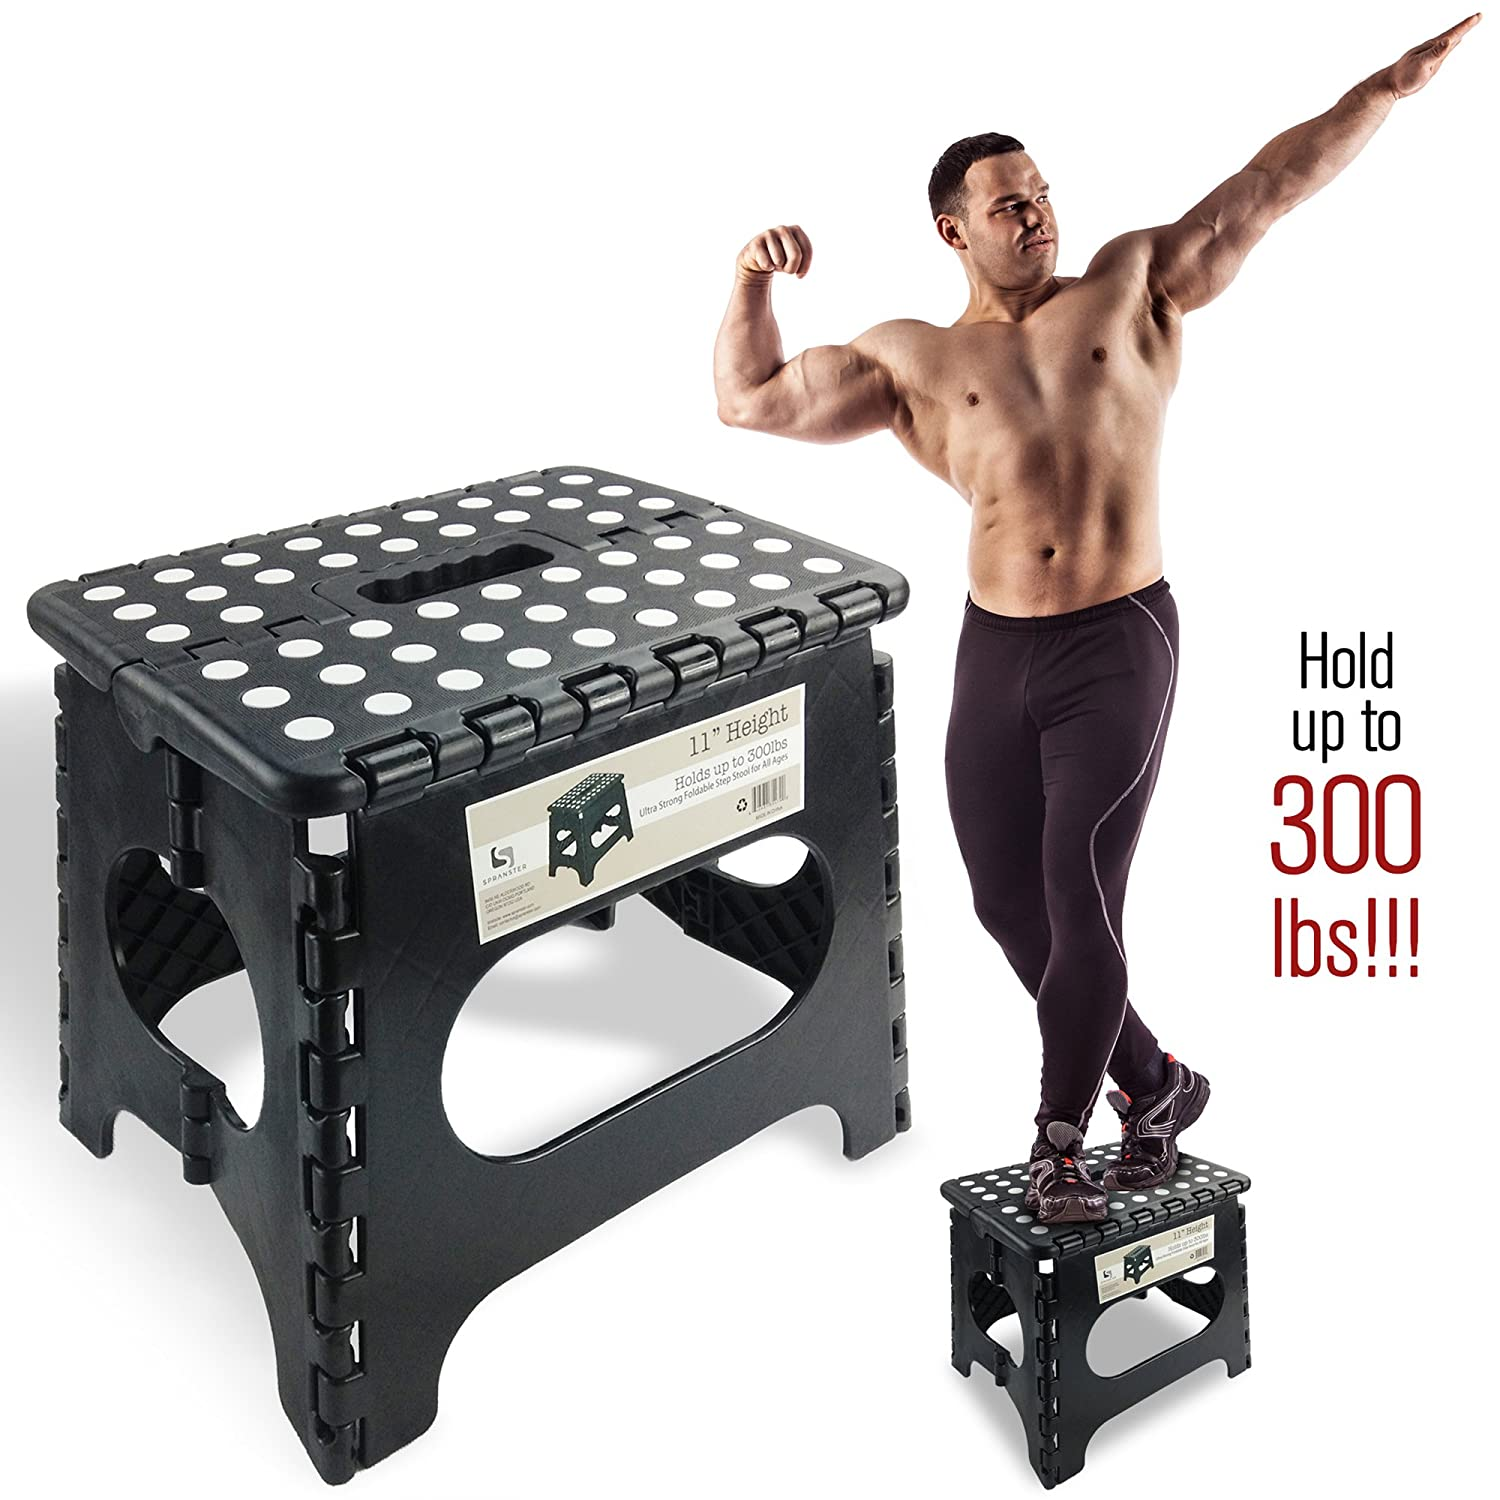 Amazon.com Super Strong Folding Step Stool - 11  Height - Holds up to 300 Lb - The lightweight foldable step stool is sturdy enough to support adults ...  sc 1 st  Amazon.com & Amazon.com: Super Strong Folding Step Stool - 11